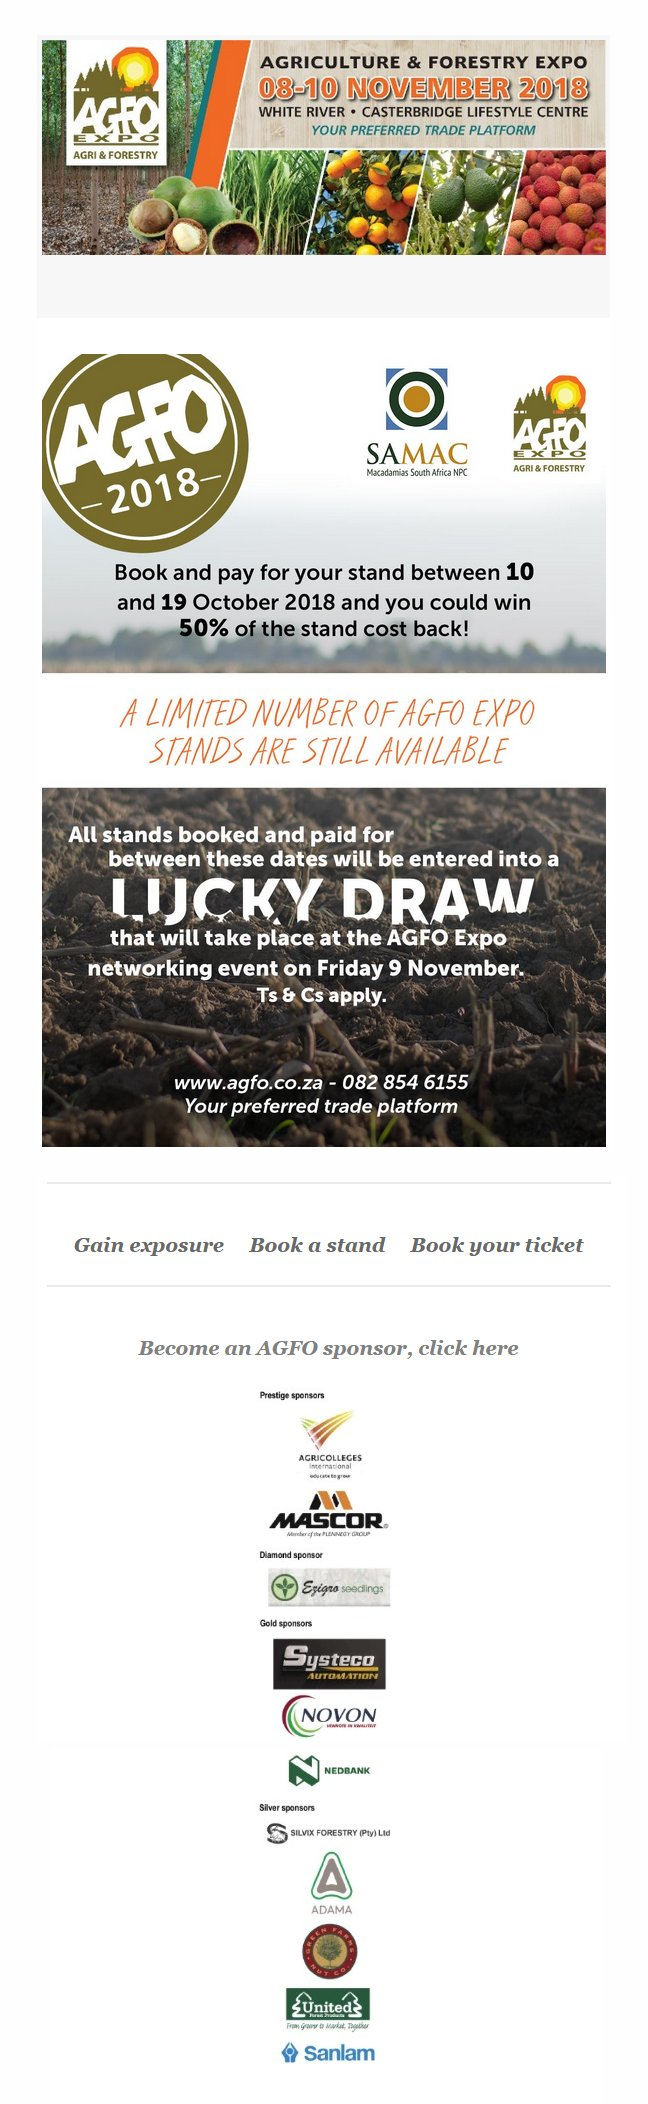 Book and pay for your stand bewteen 10 and 19 October 2018 and you could win 50% of the stand cost back. All stands booked and paid for between these dates will be entered into a lucky draw that will take place at the AGFO Expo.